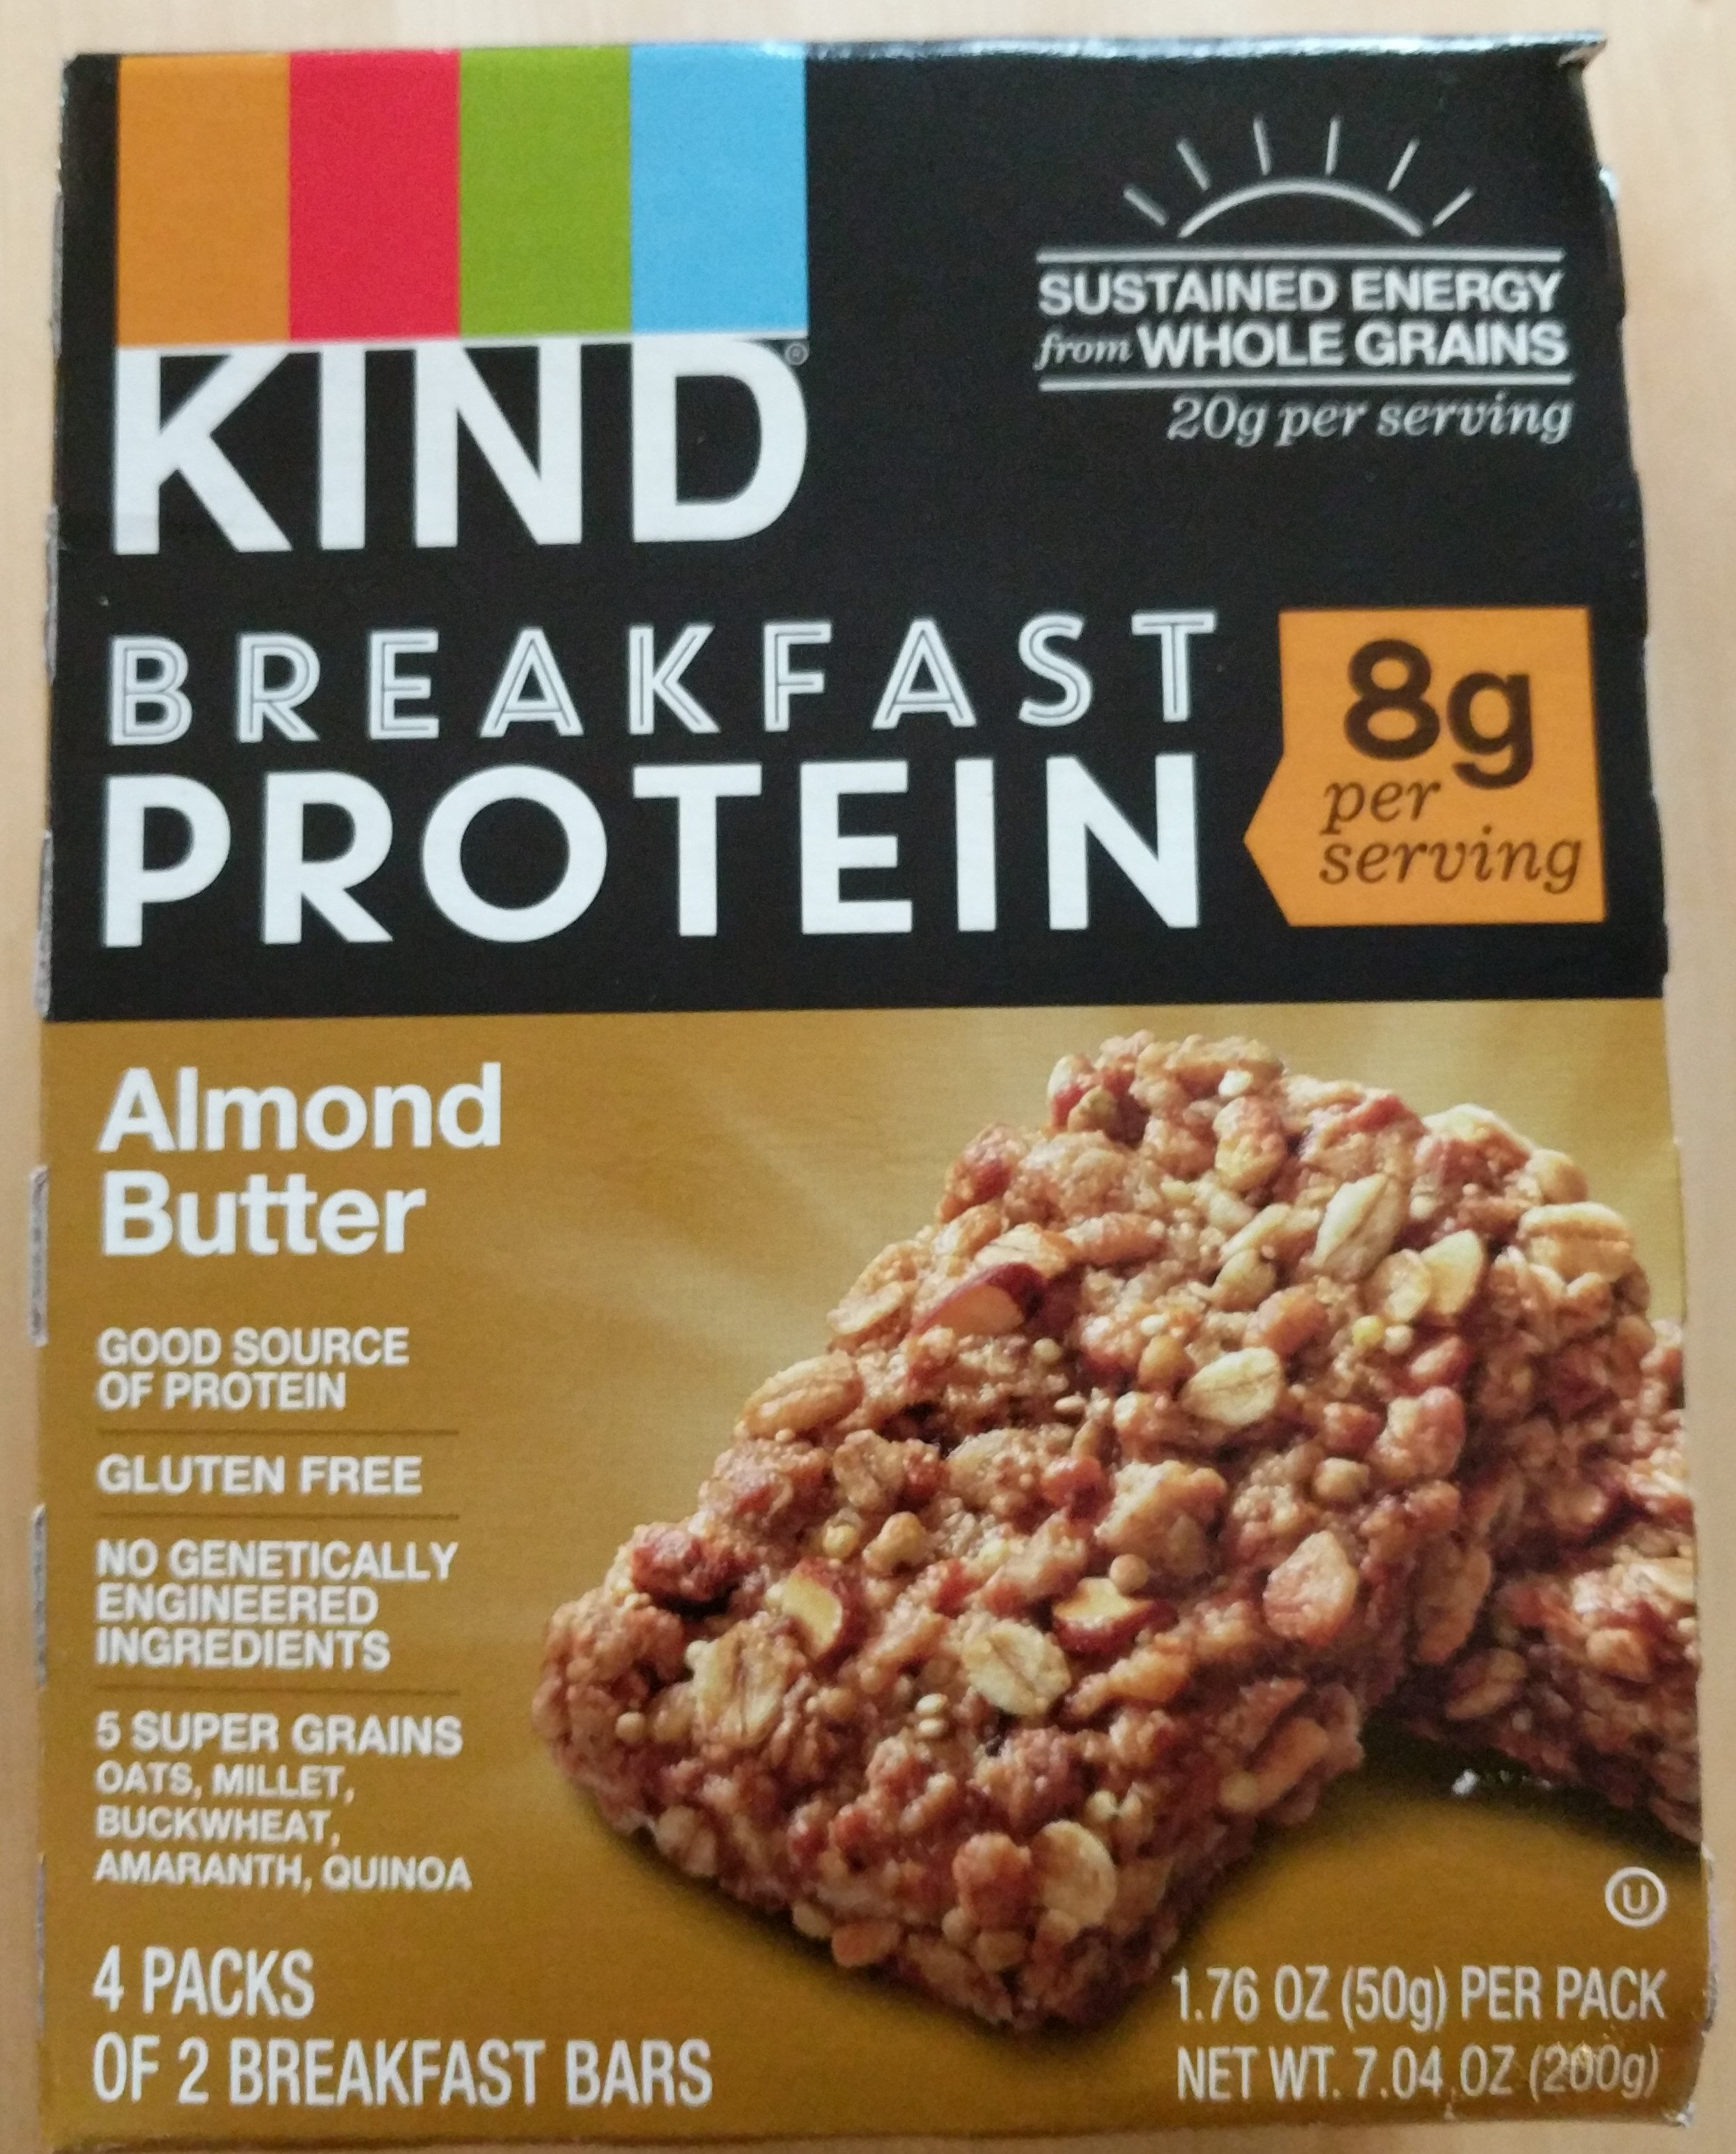 Kind Breakfast Protein Almond Butter - Product